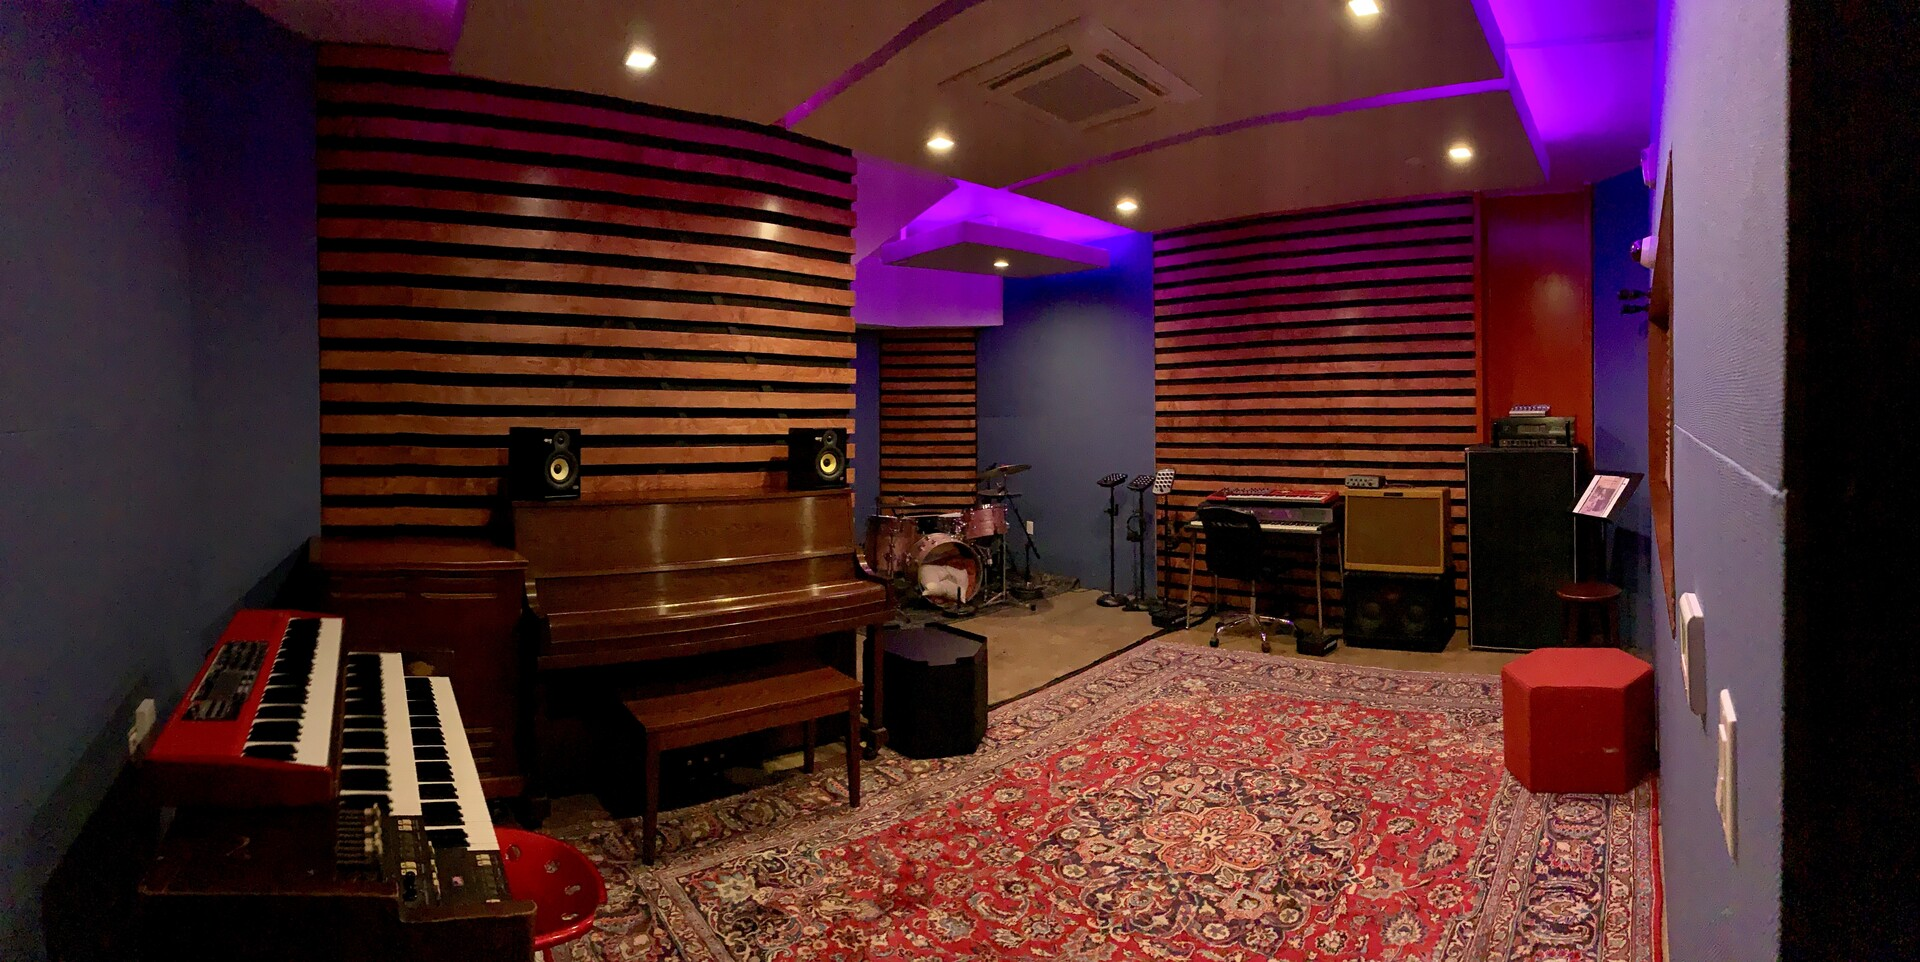 Create some great music with your band in this recording studio.  QuietRock helped LemonTree create a soundproof studio with their sound reducing drywall, putty and sealant.